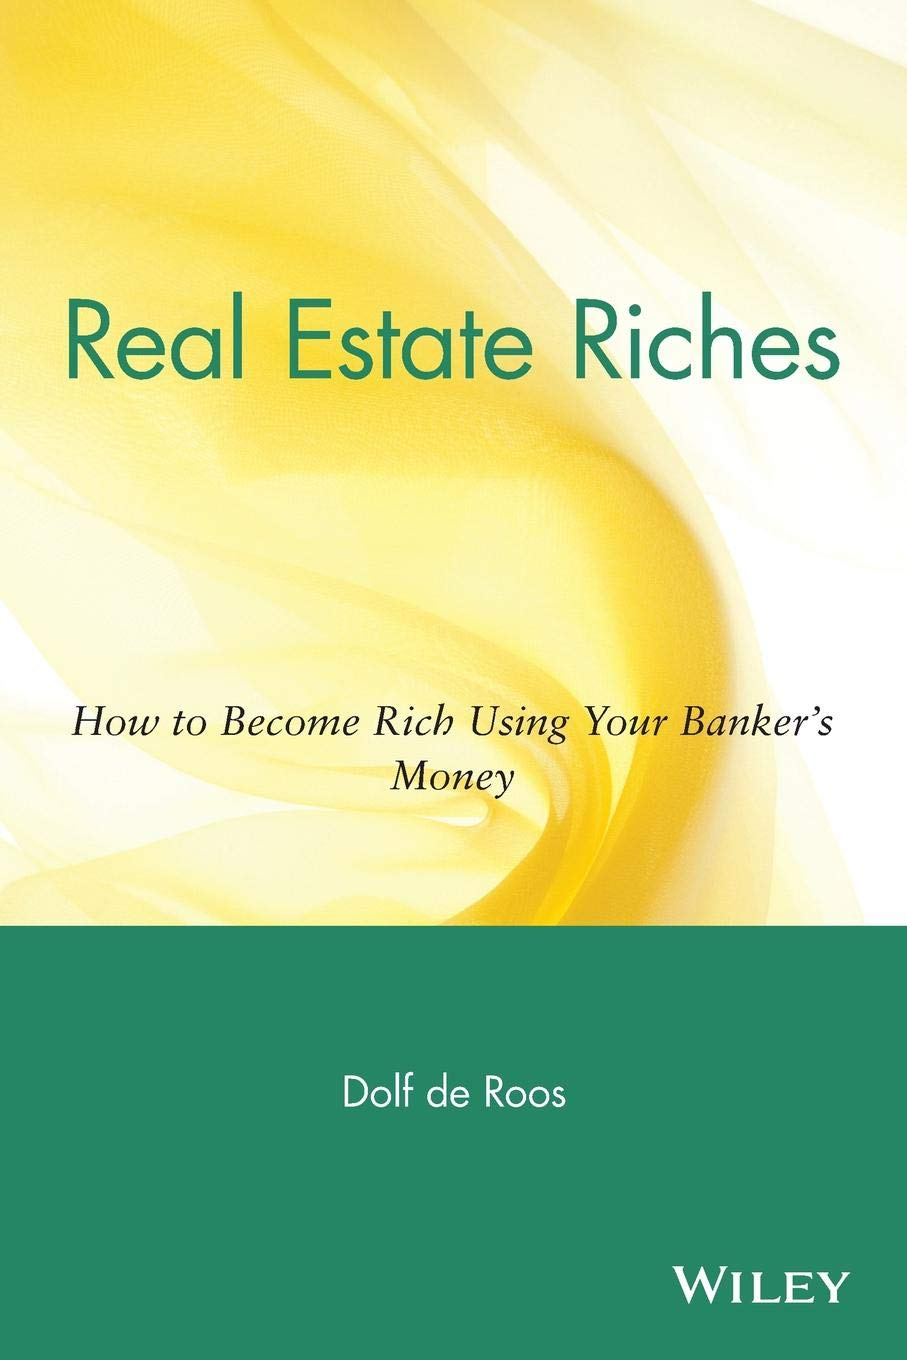 Real Estate Riches: How to Become Rich Using Your Bankers Money